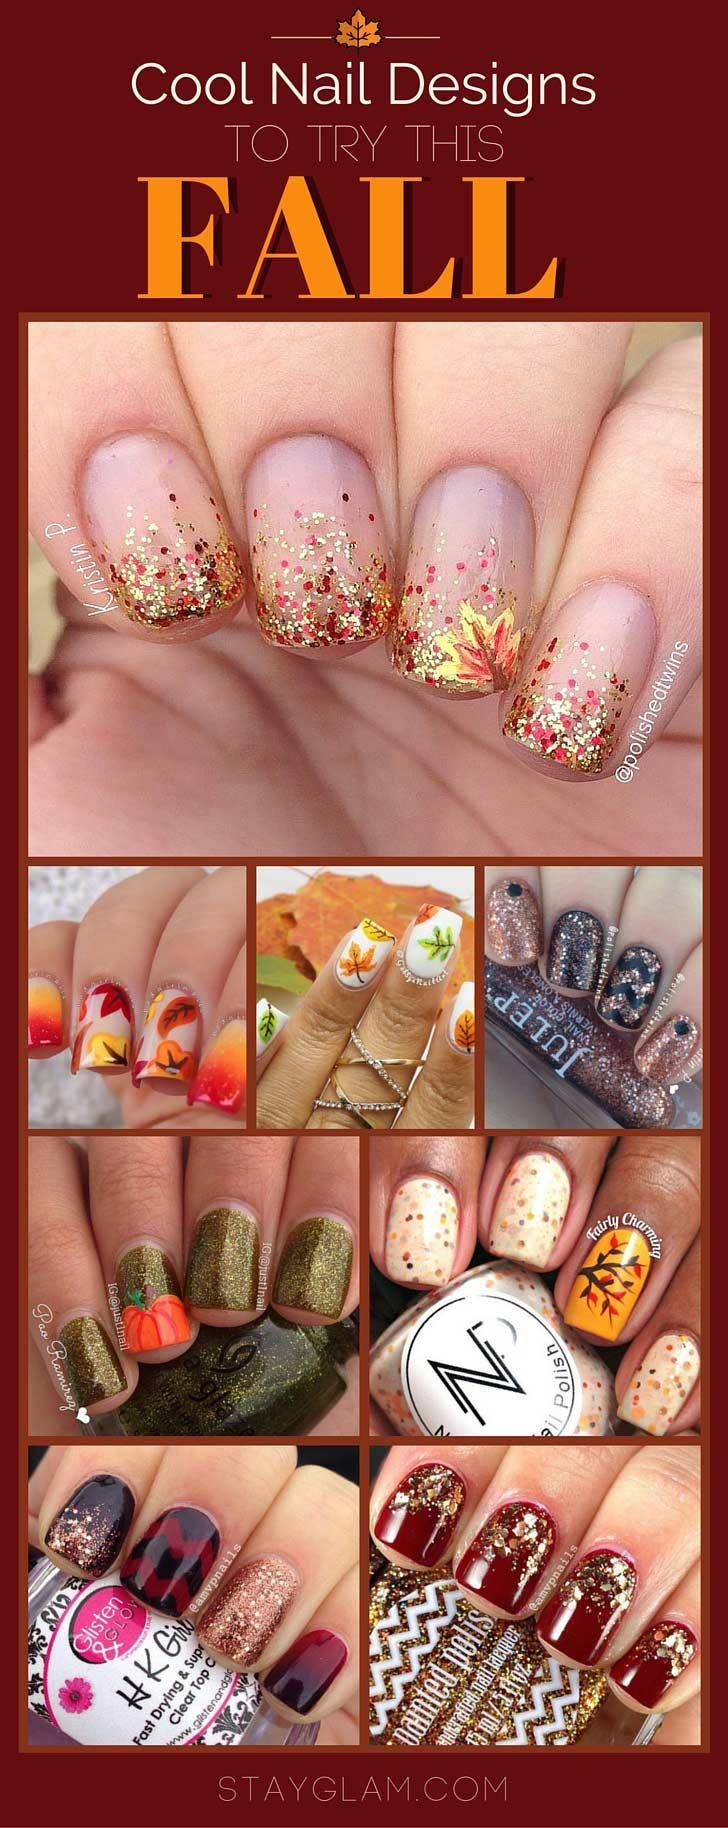 35 Cool Nail Designs To Try This Fall Pinterest Makeup Nail